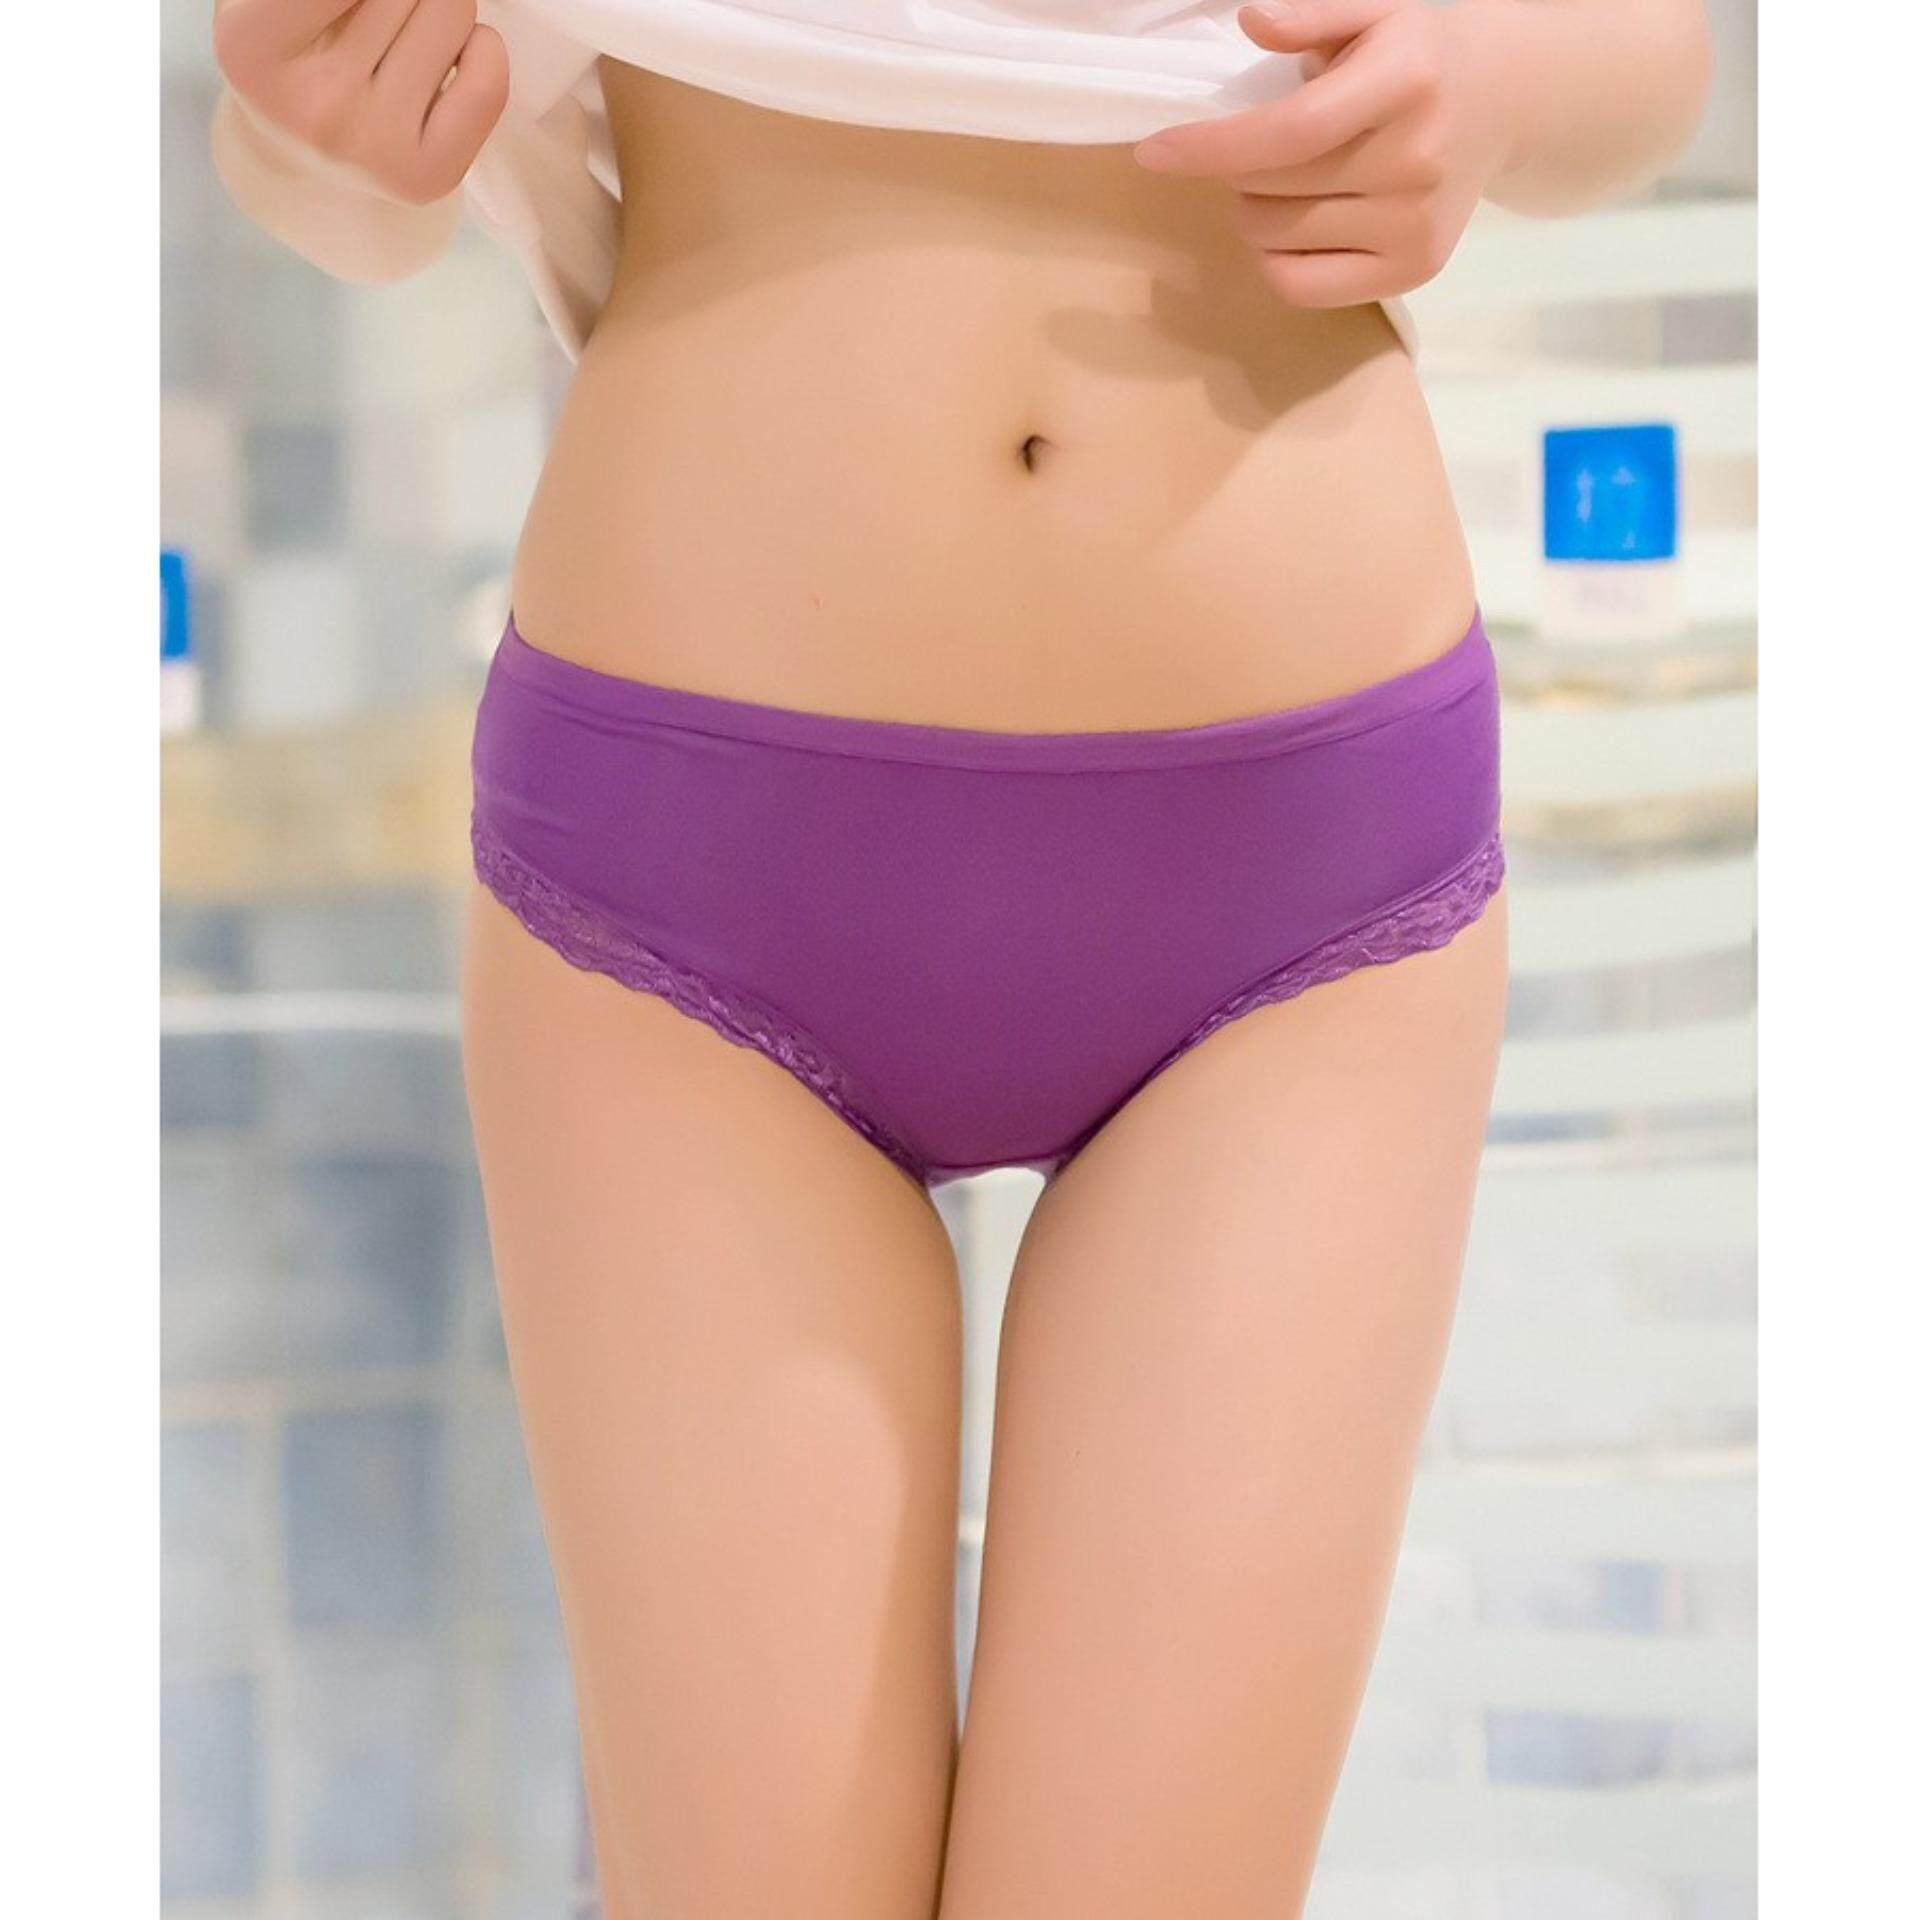 15c2ab363 10x Super Stretchable Soft Bamboo Anti-odour Lace Panties-LOWEST PRICE  CLEARANCE SALE